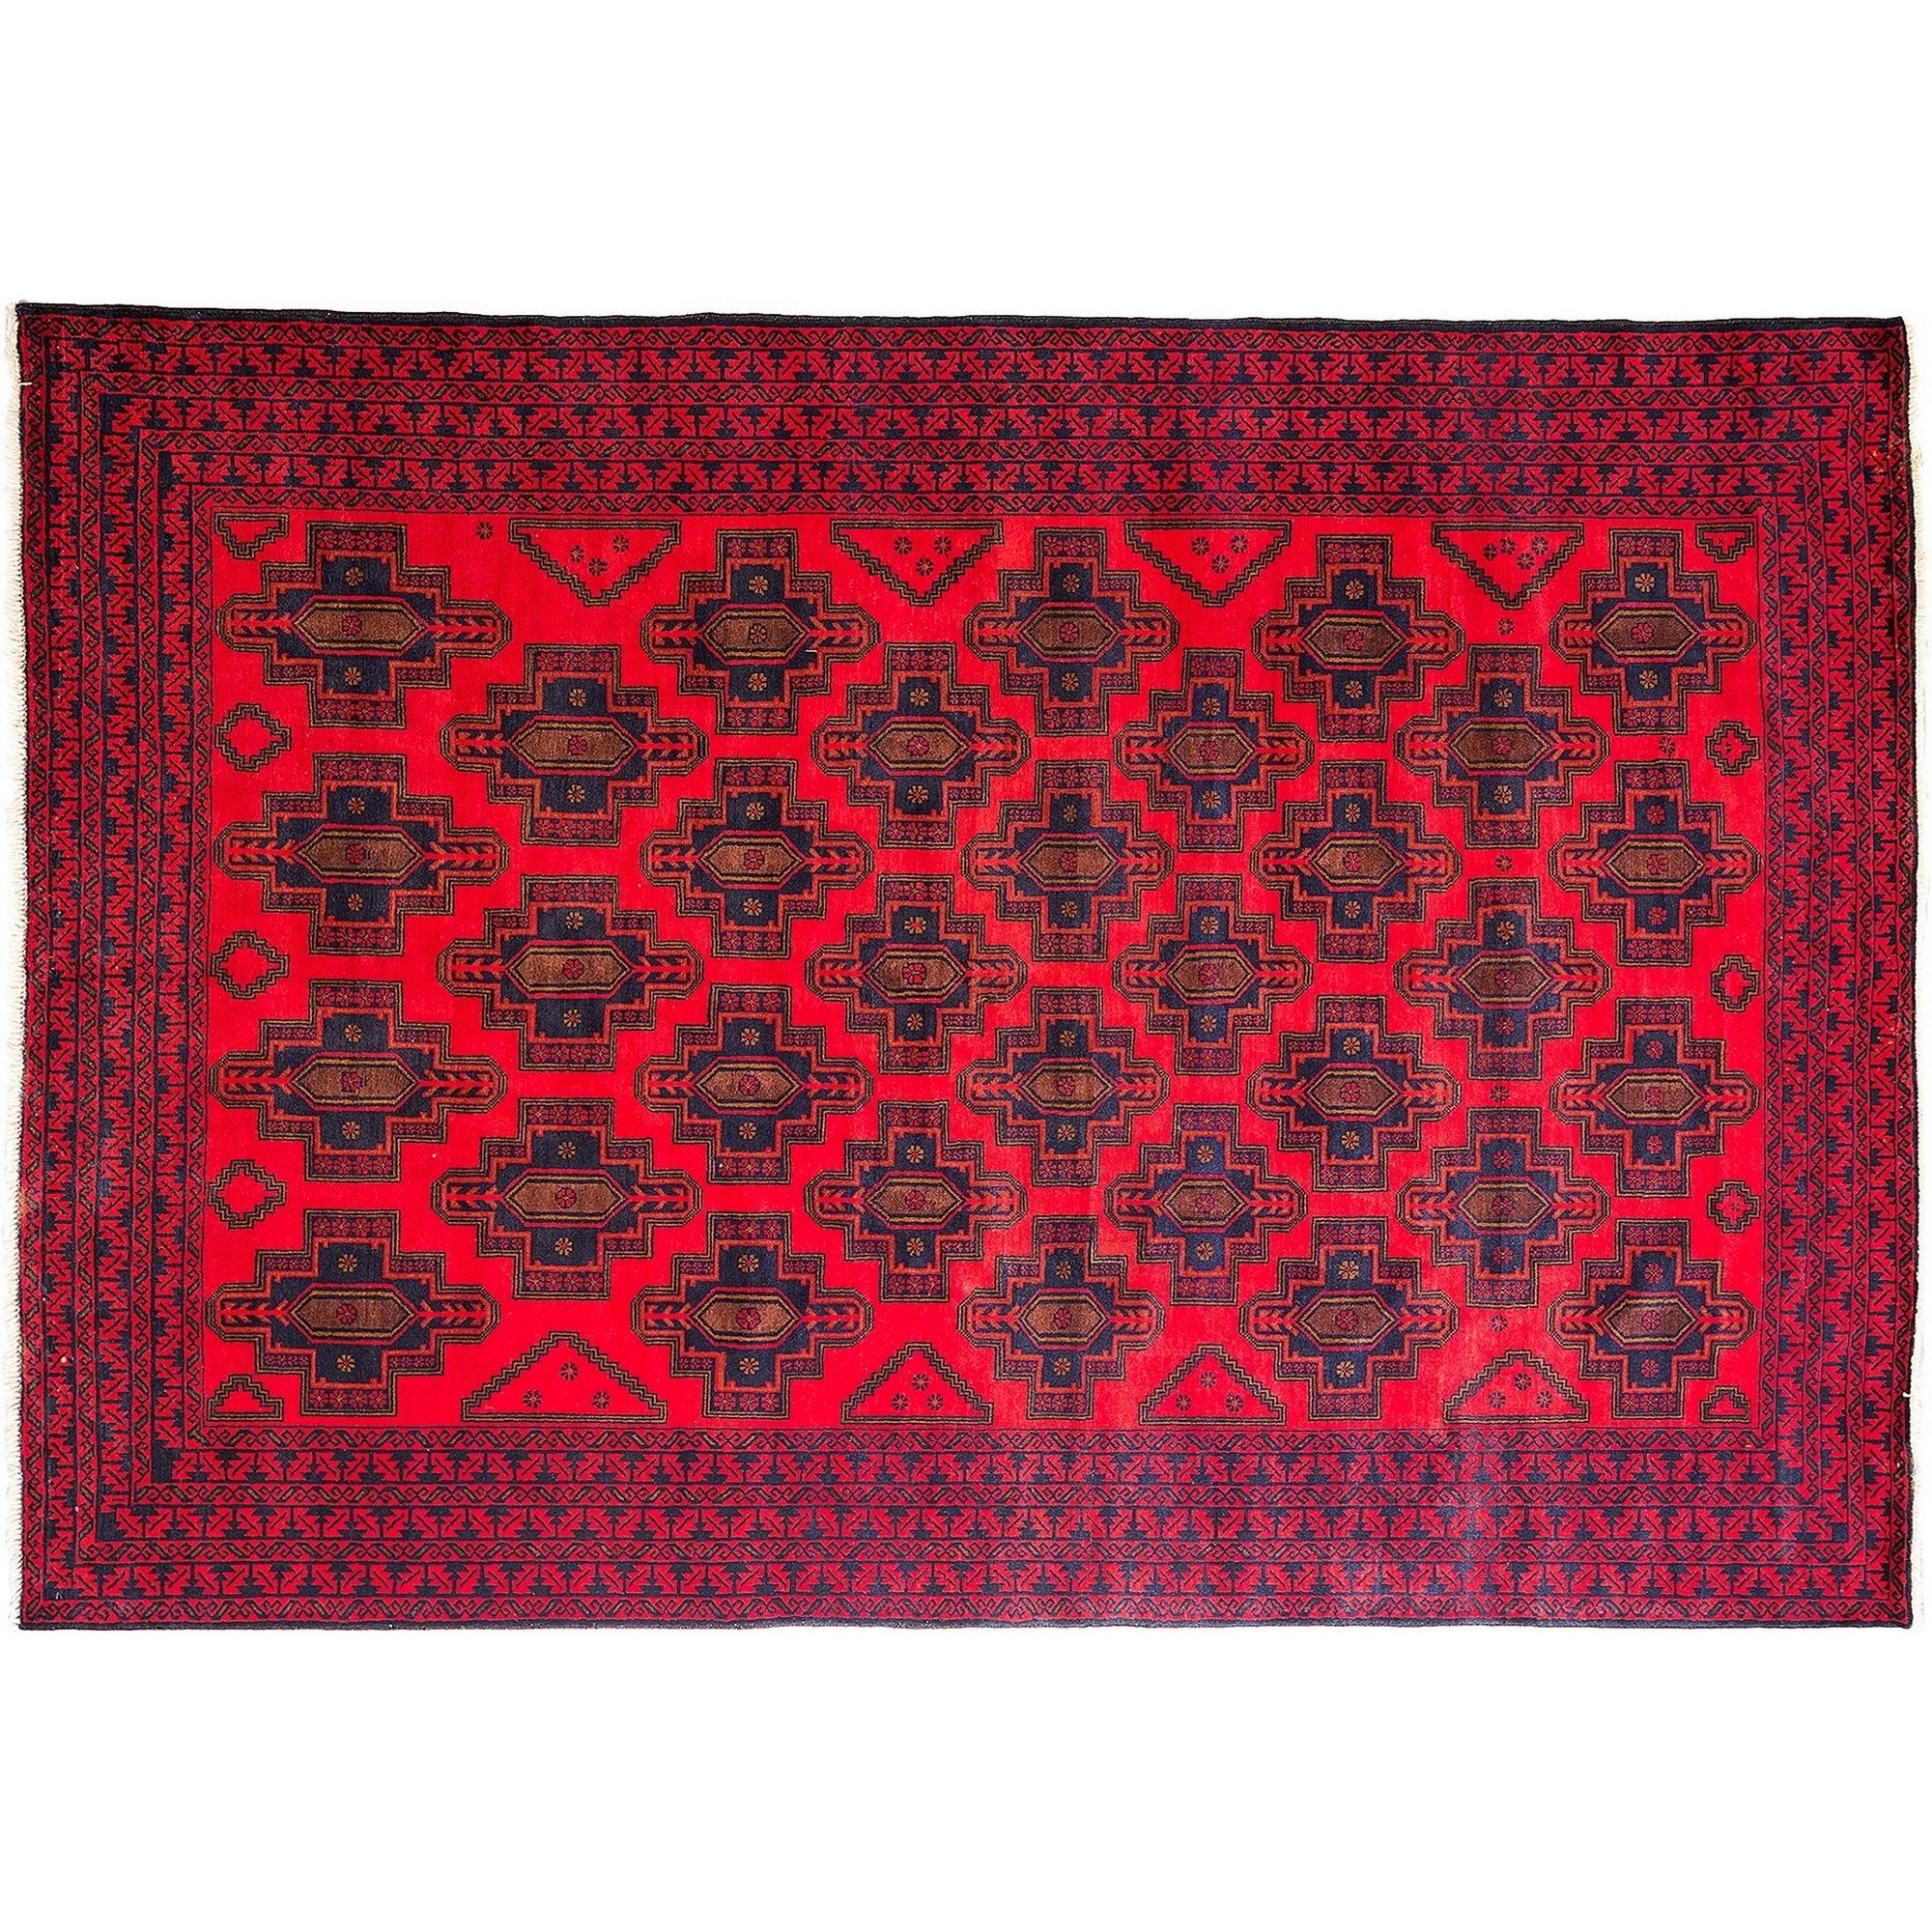 Tribal Red Wool Area Rug 6 8 X 9 7 Lillian August